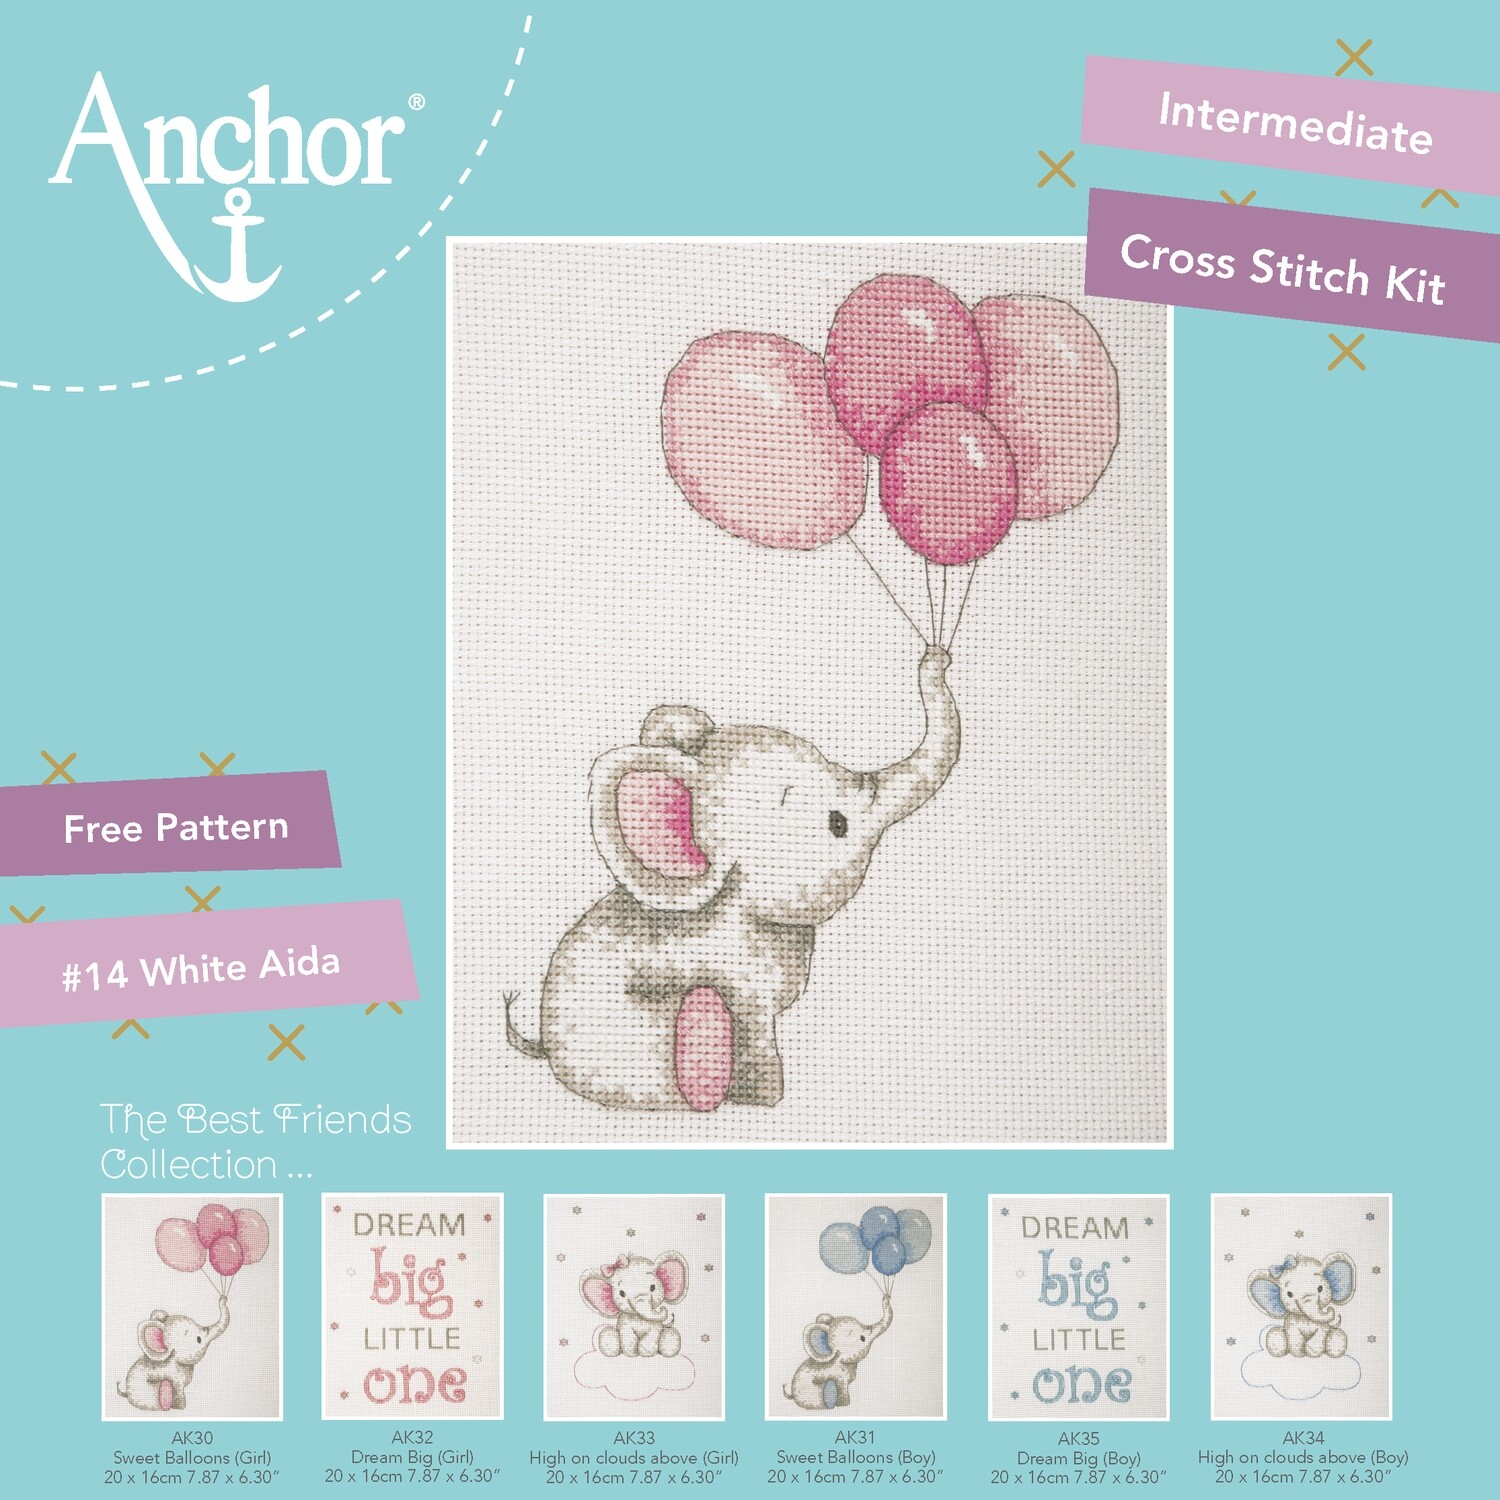 The Best Friends Collection - Sweet Balloons (Pink) 20x16cm